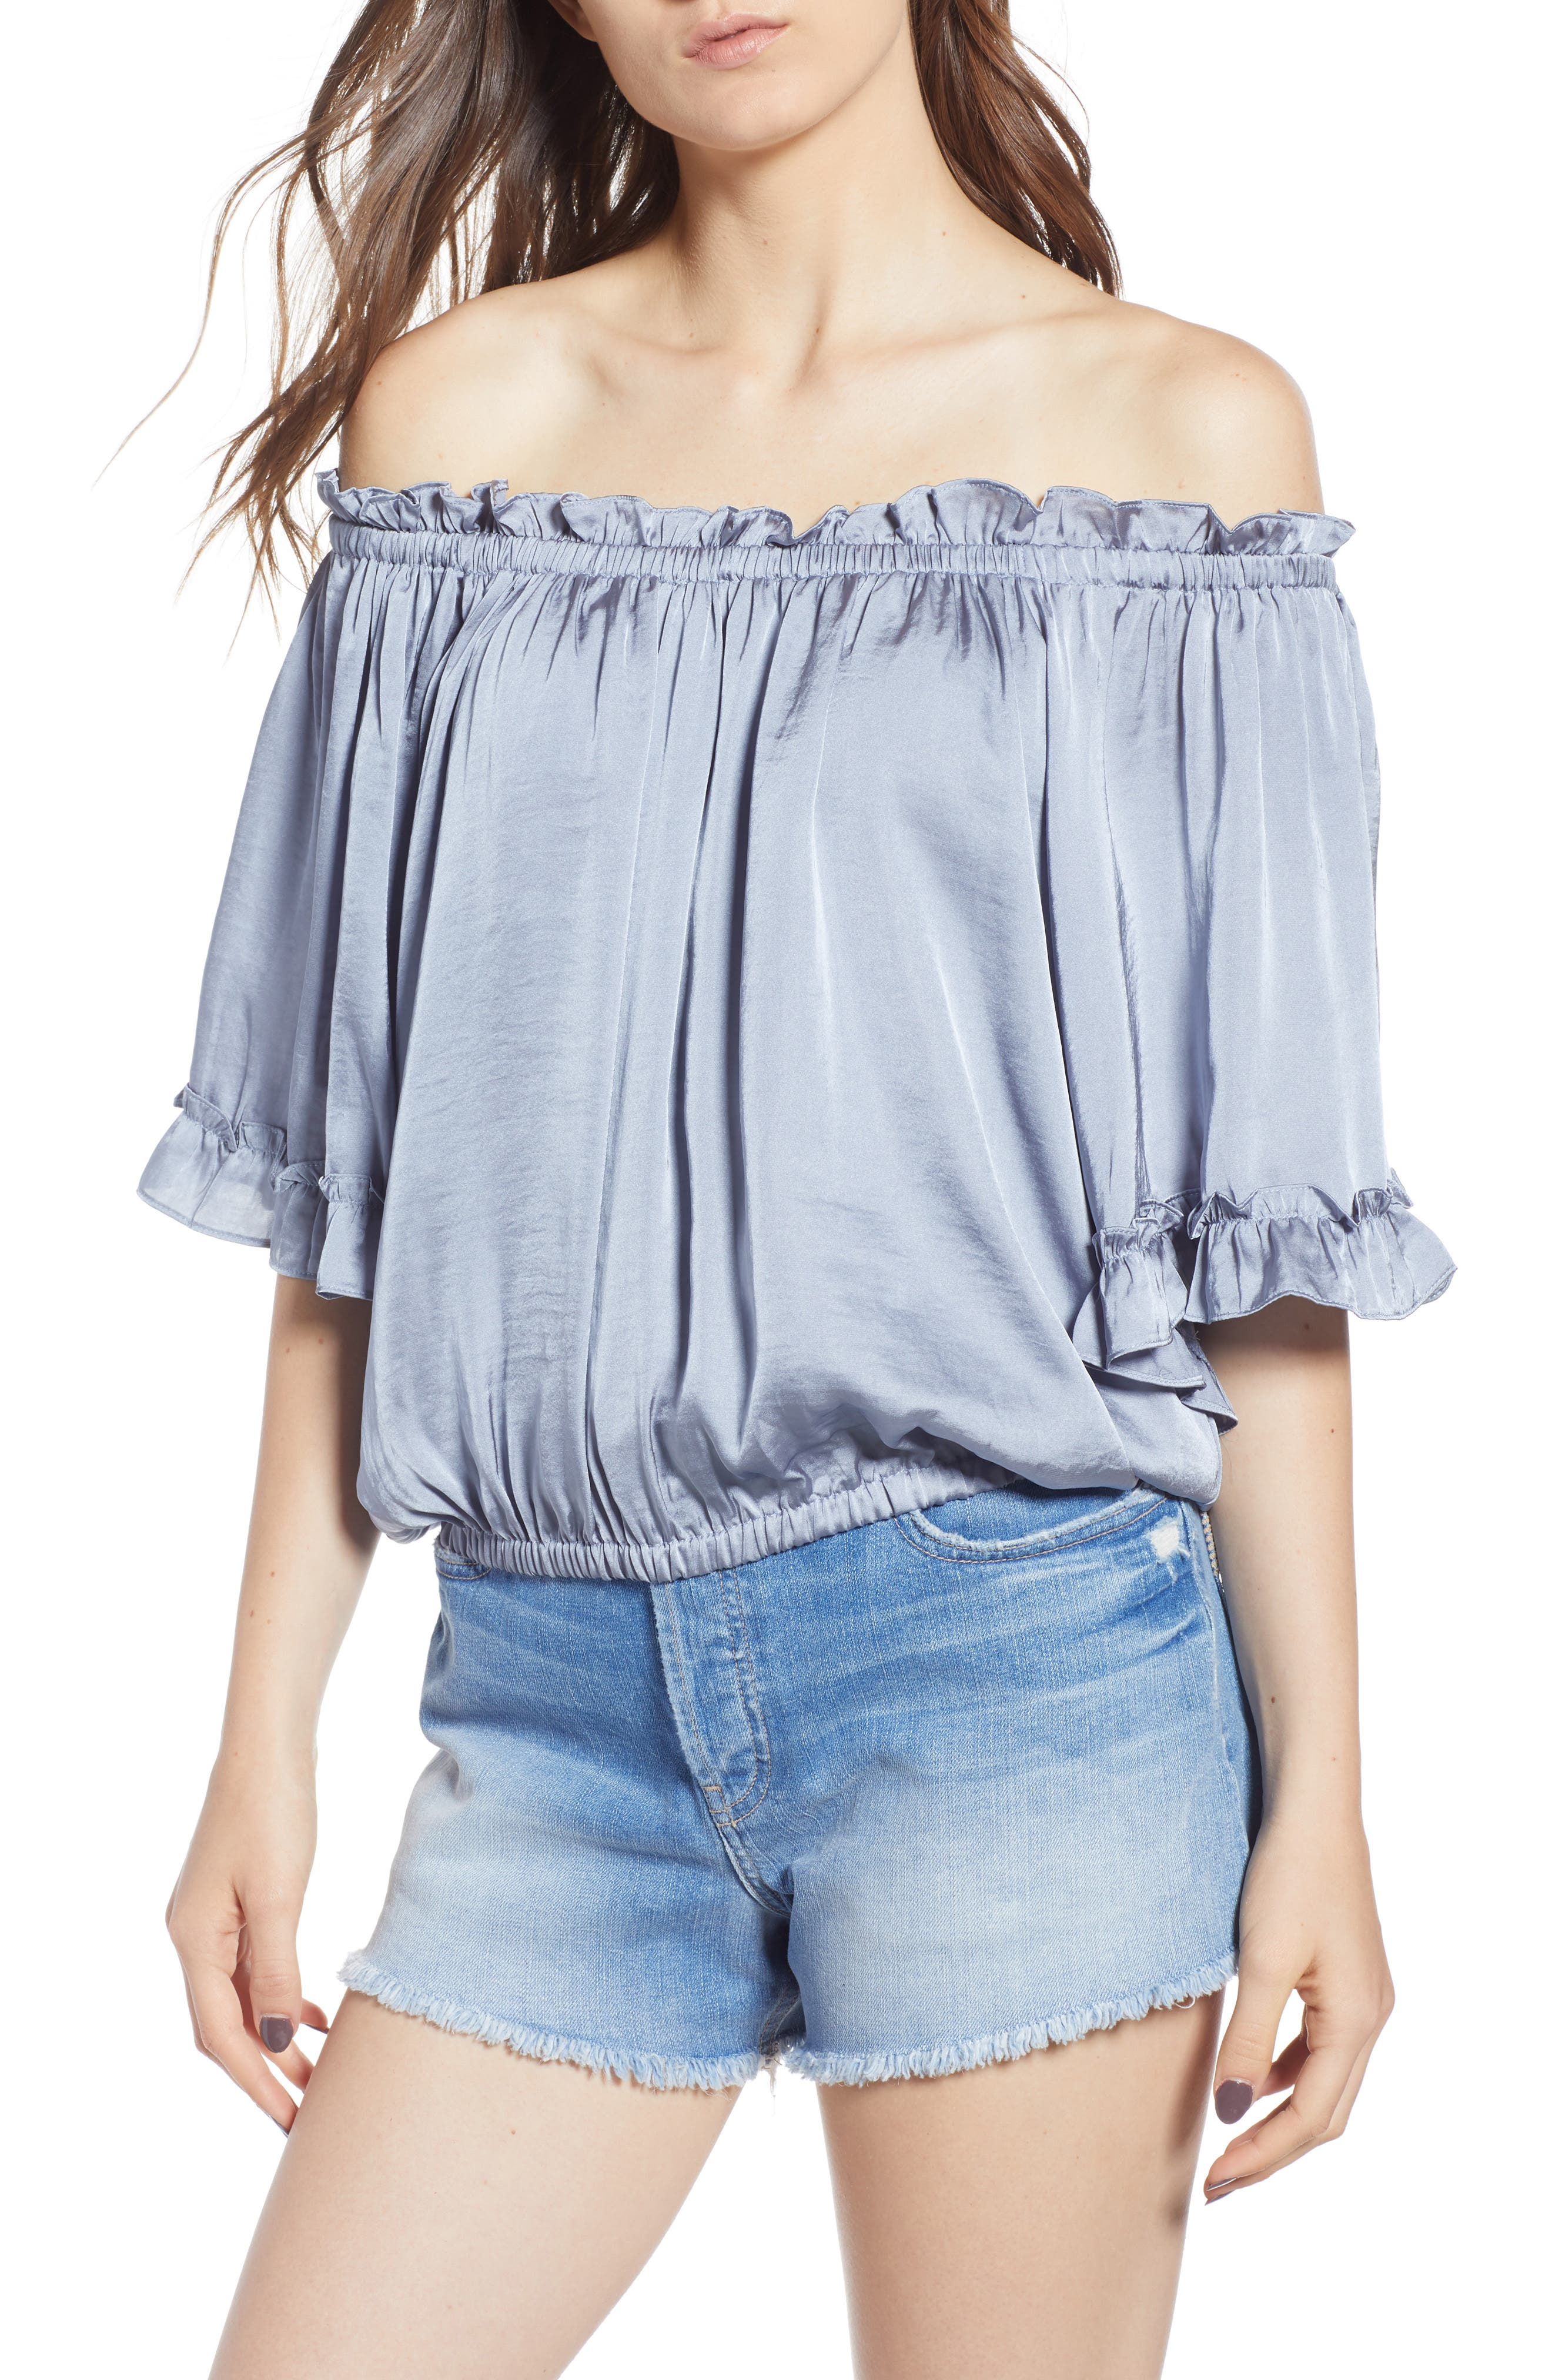 MISA ABBY OFF THE SHOULDER TOP